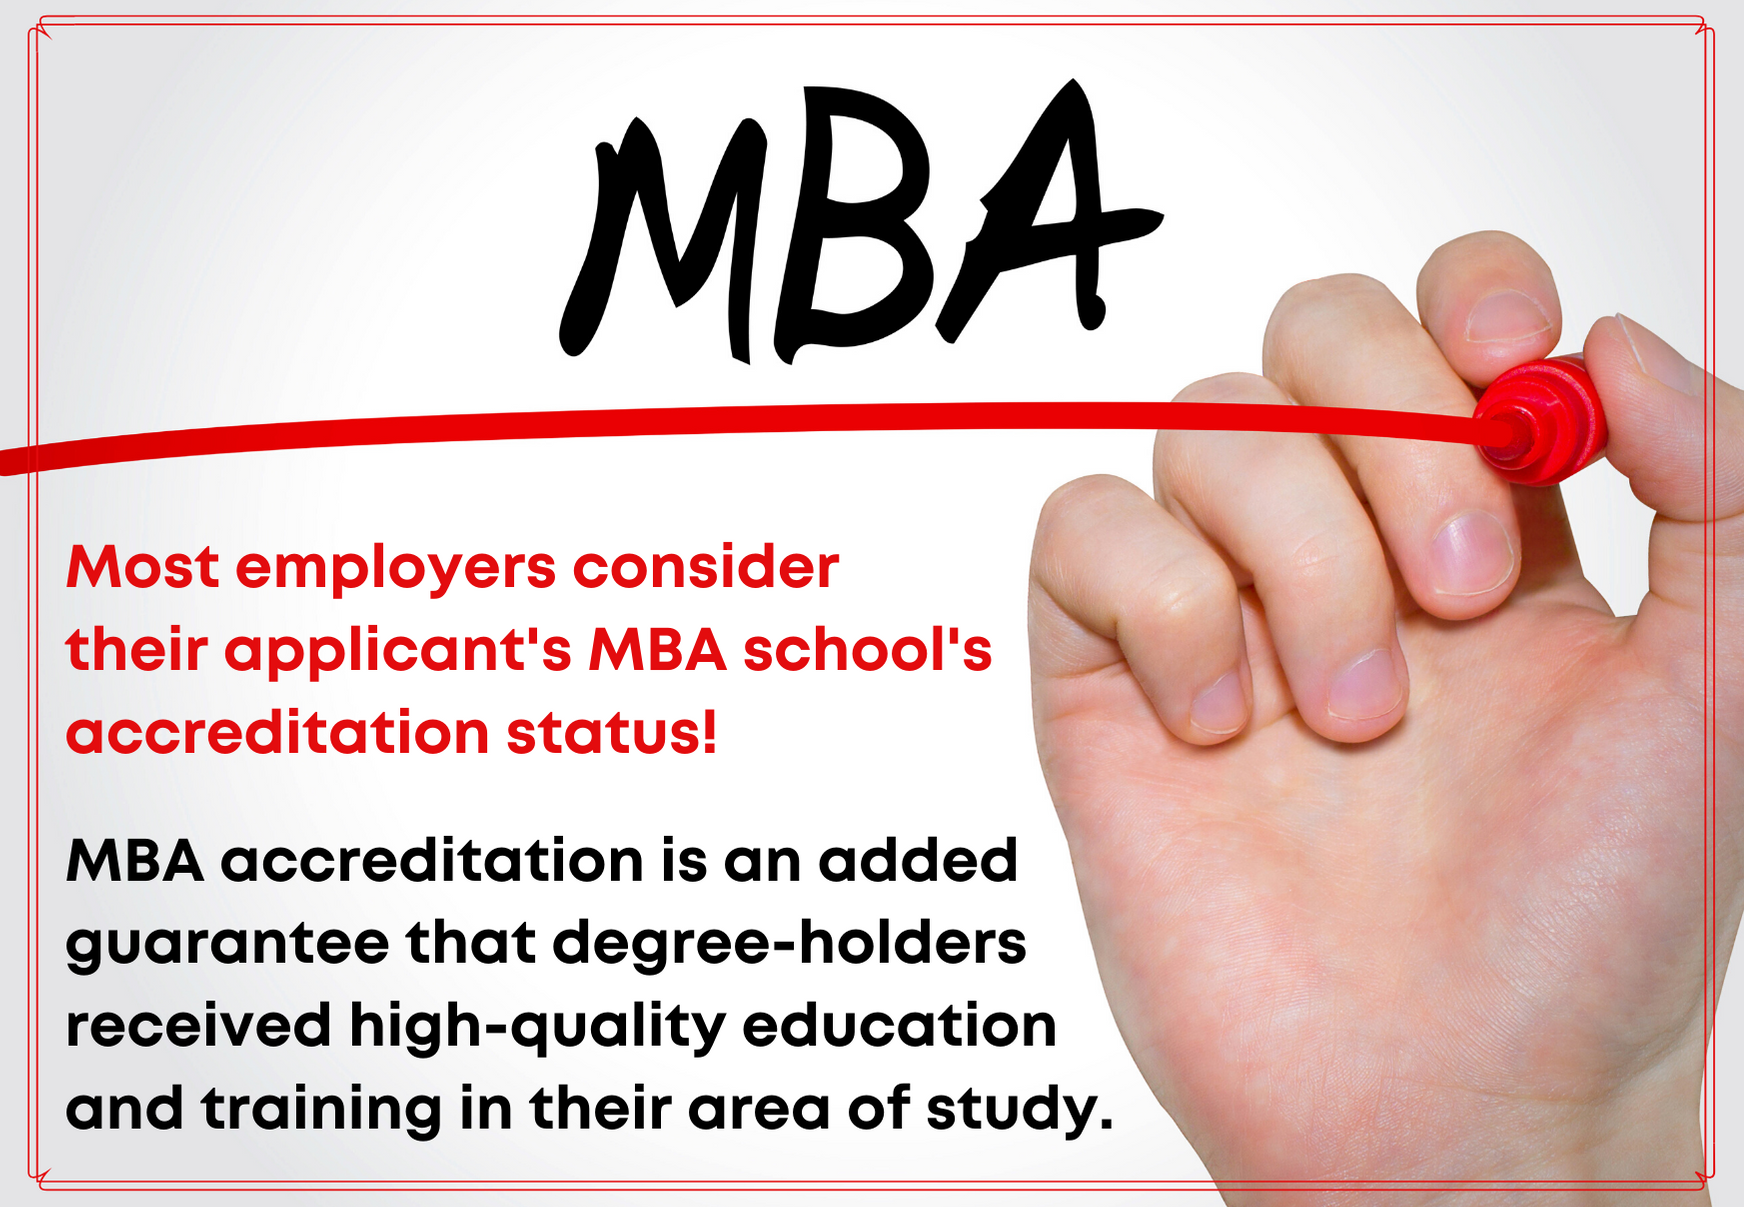 MBA accreditation fact 3